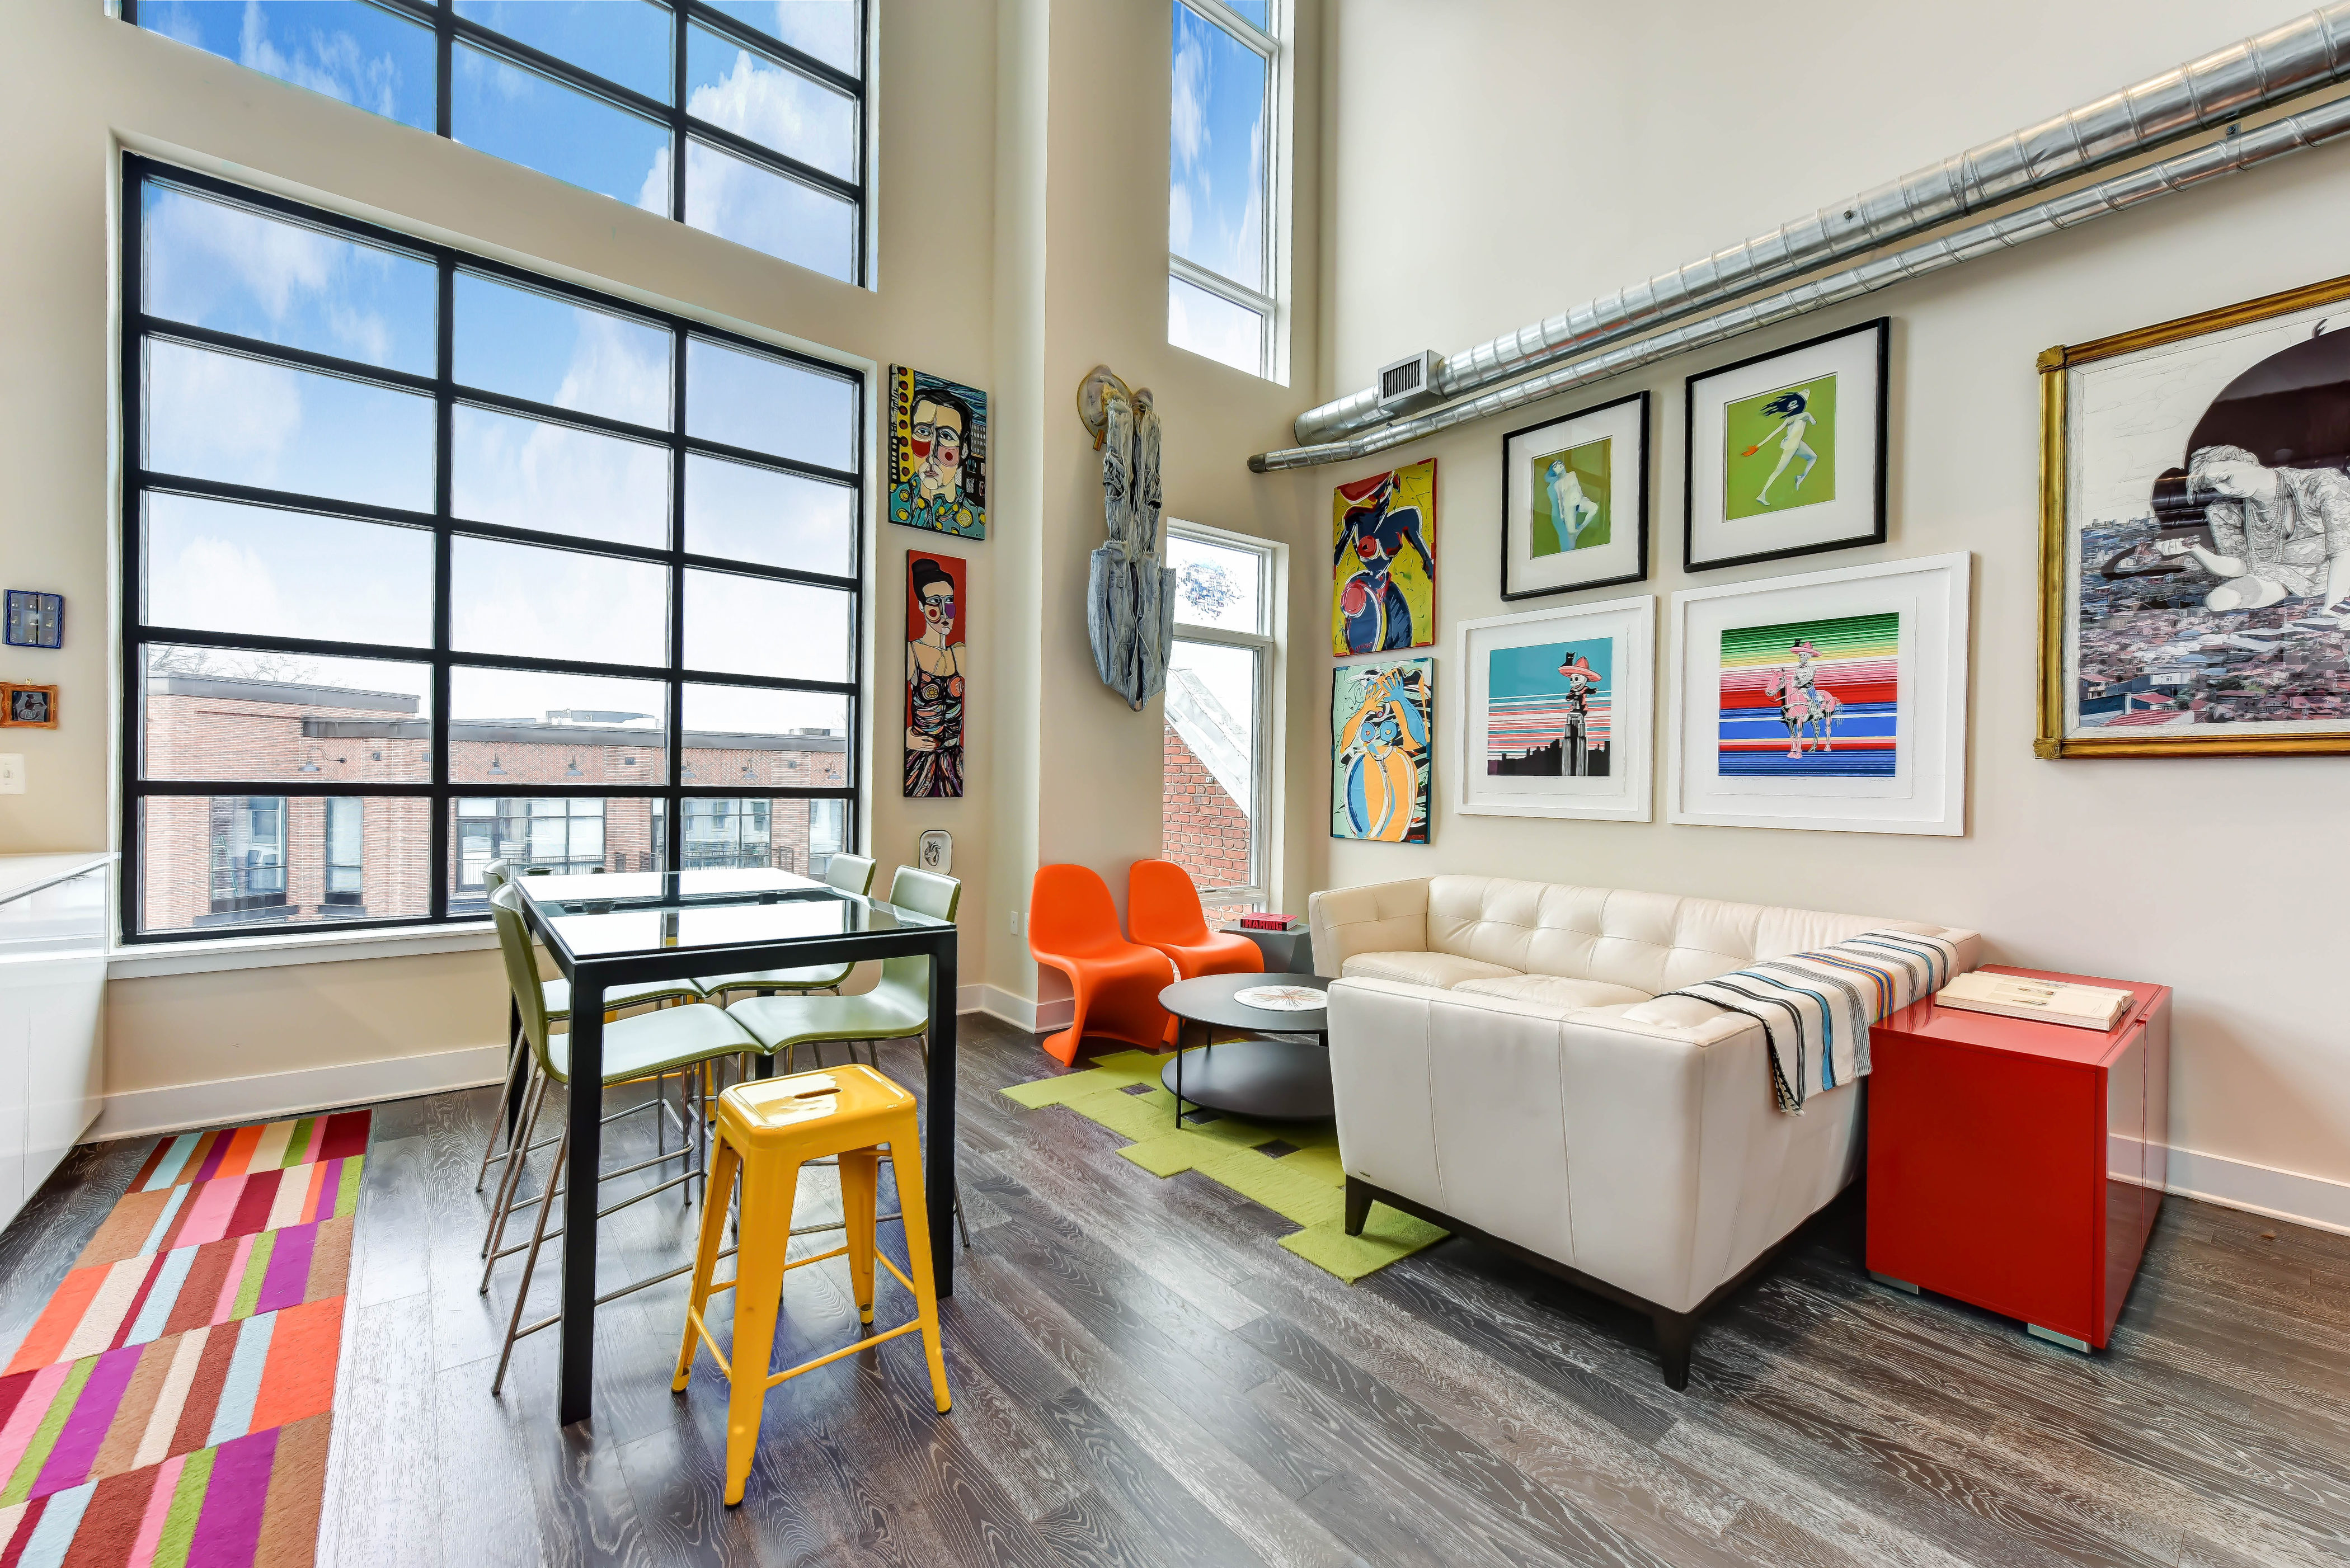 This dual-level, loft-style penthouse is the last unit available in a boutique six-unit building. The two-bedroom, two-bath 1,000-square-foot condo has an industrial chic vibe with exposed ductwork, a sliding barn door and floor-to-ceiling windows. It's been on the market for seven days, starting at $769,000. (Image: Courtesy Compass)